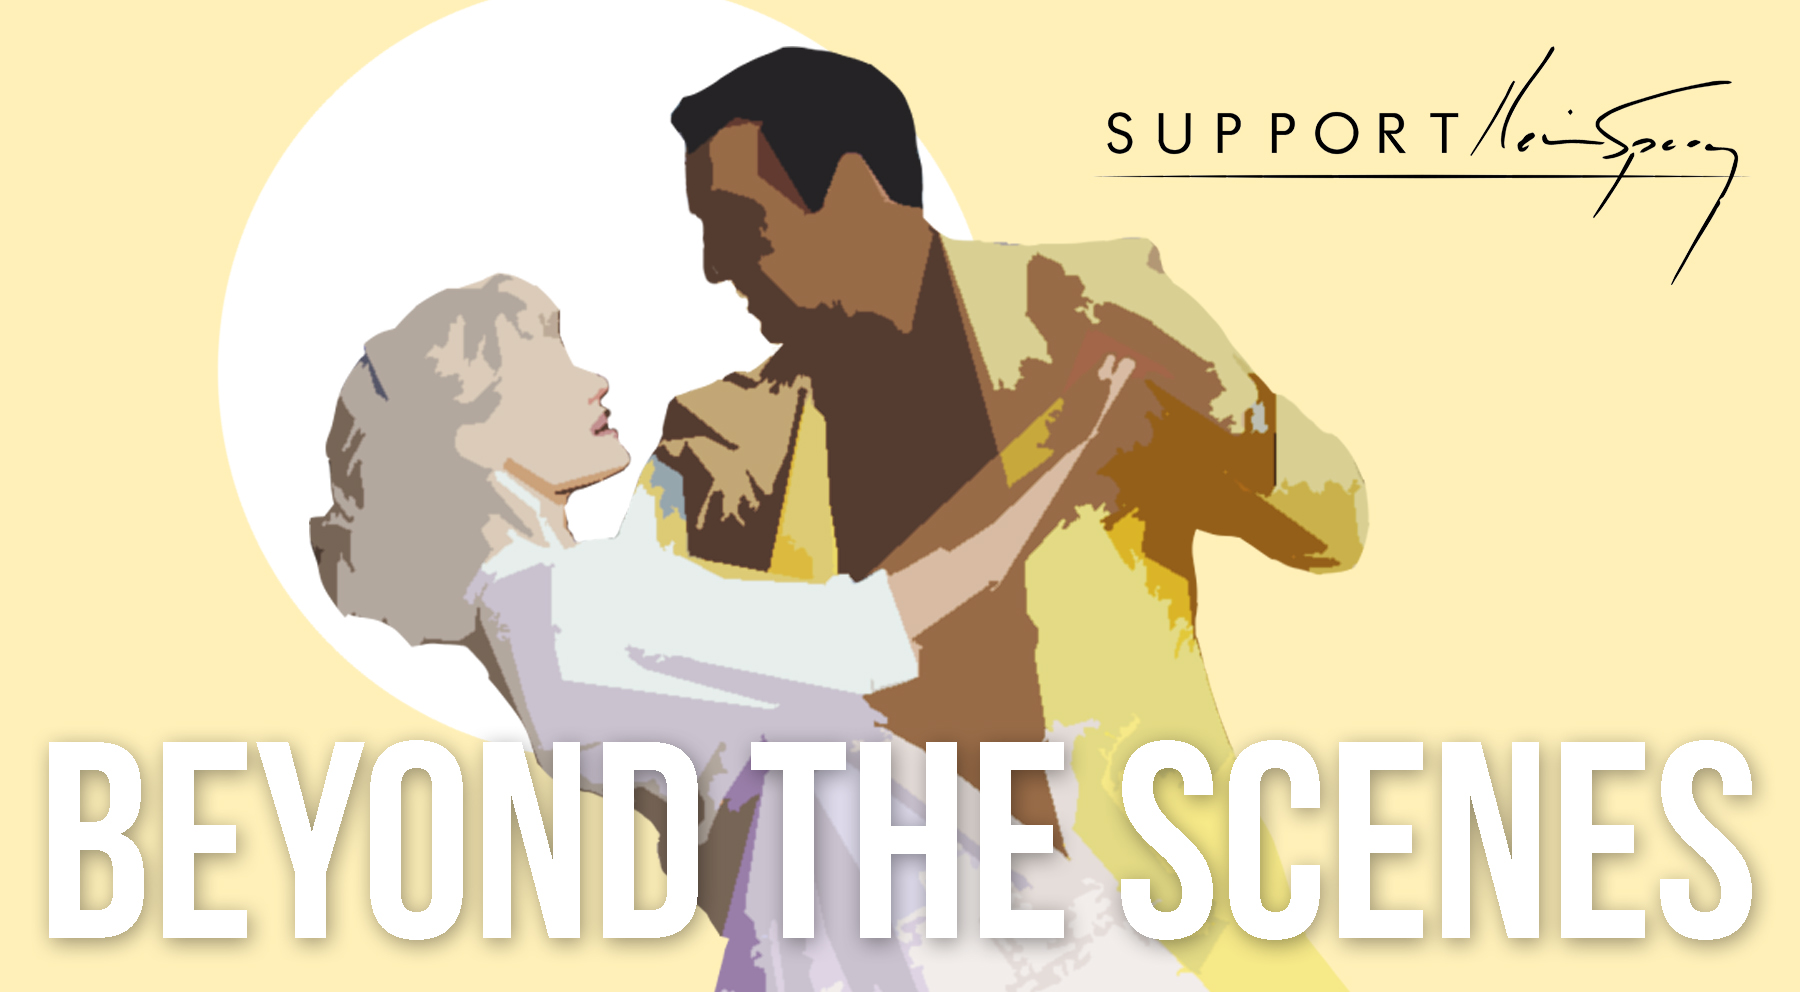 Beyond The Sea - Supportkevinspacey.com